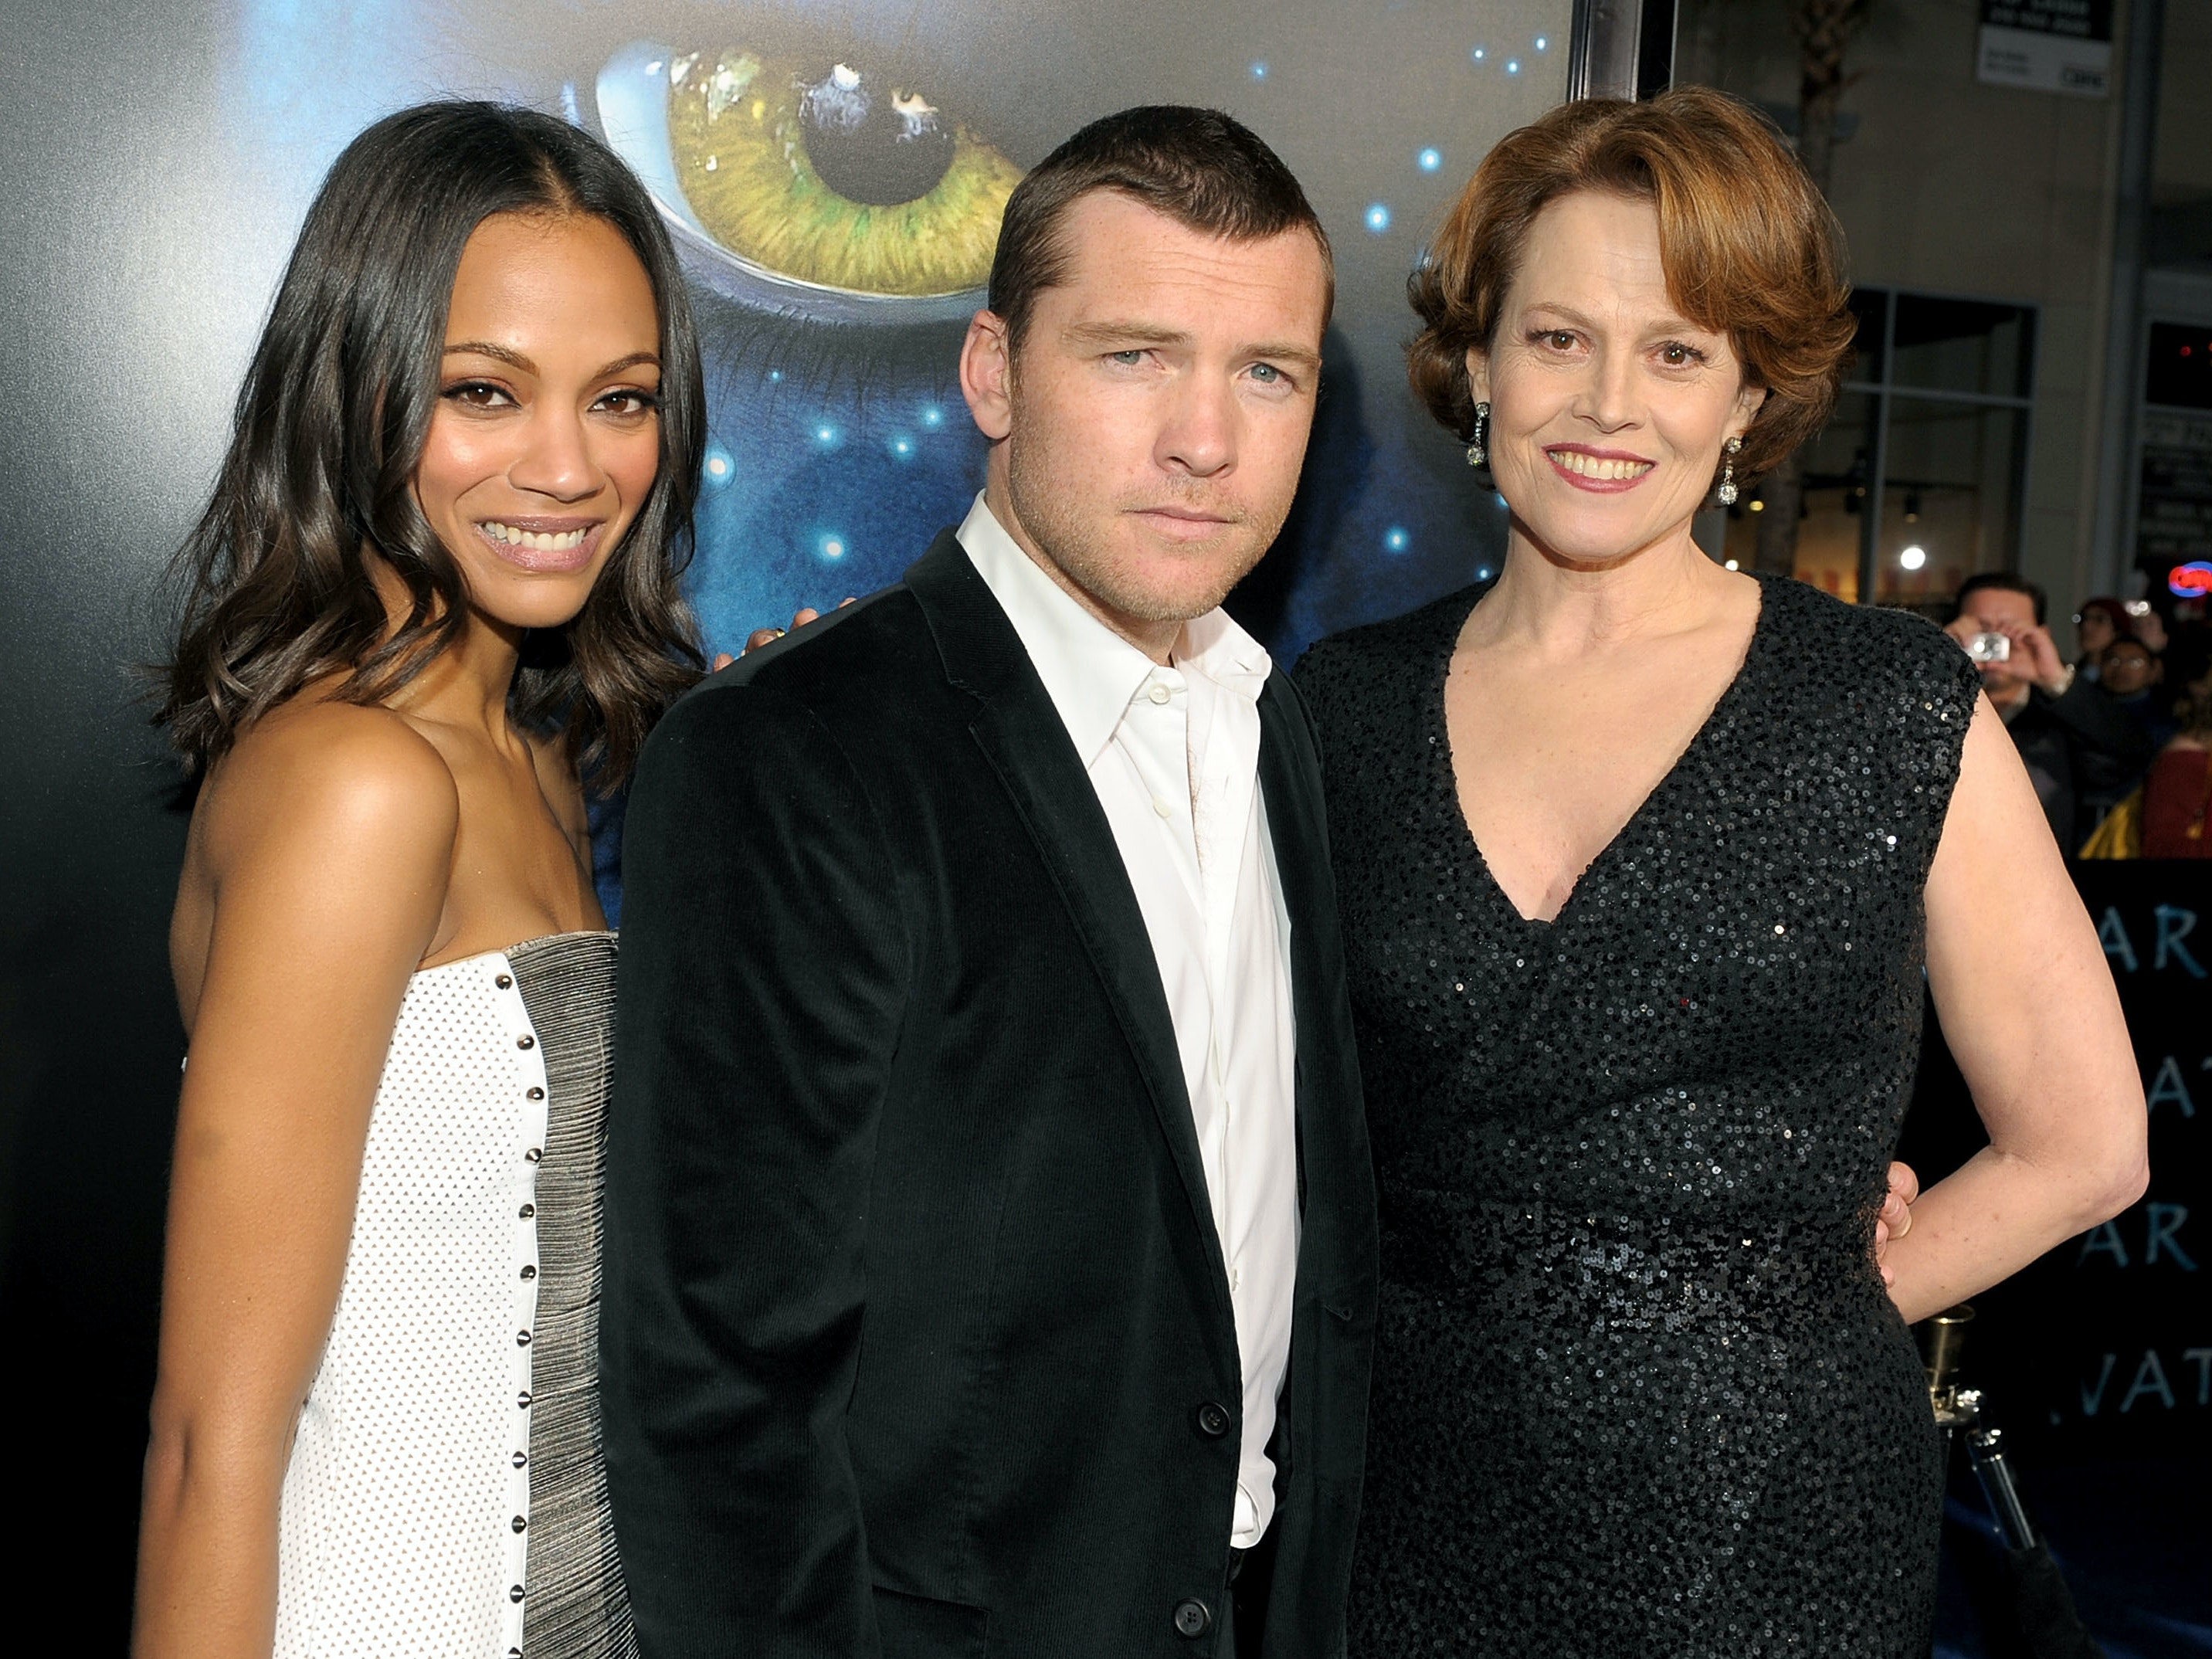 HOLLYWOOD - DECEMBER 16:  (L-R) Actors Zoe Saldana, Sam Worthington and Sigourney Weaver arrive at the premiere of 20th Century Fox's 'Avatar' at the Grauman's Chinese Theatre on December 16, 2009 in Hollywood, California.  (Photo by Kevin Winter/Getty Images)